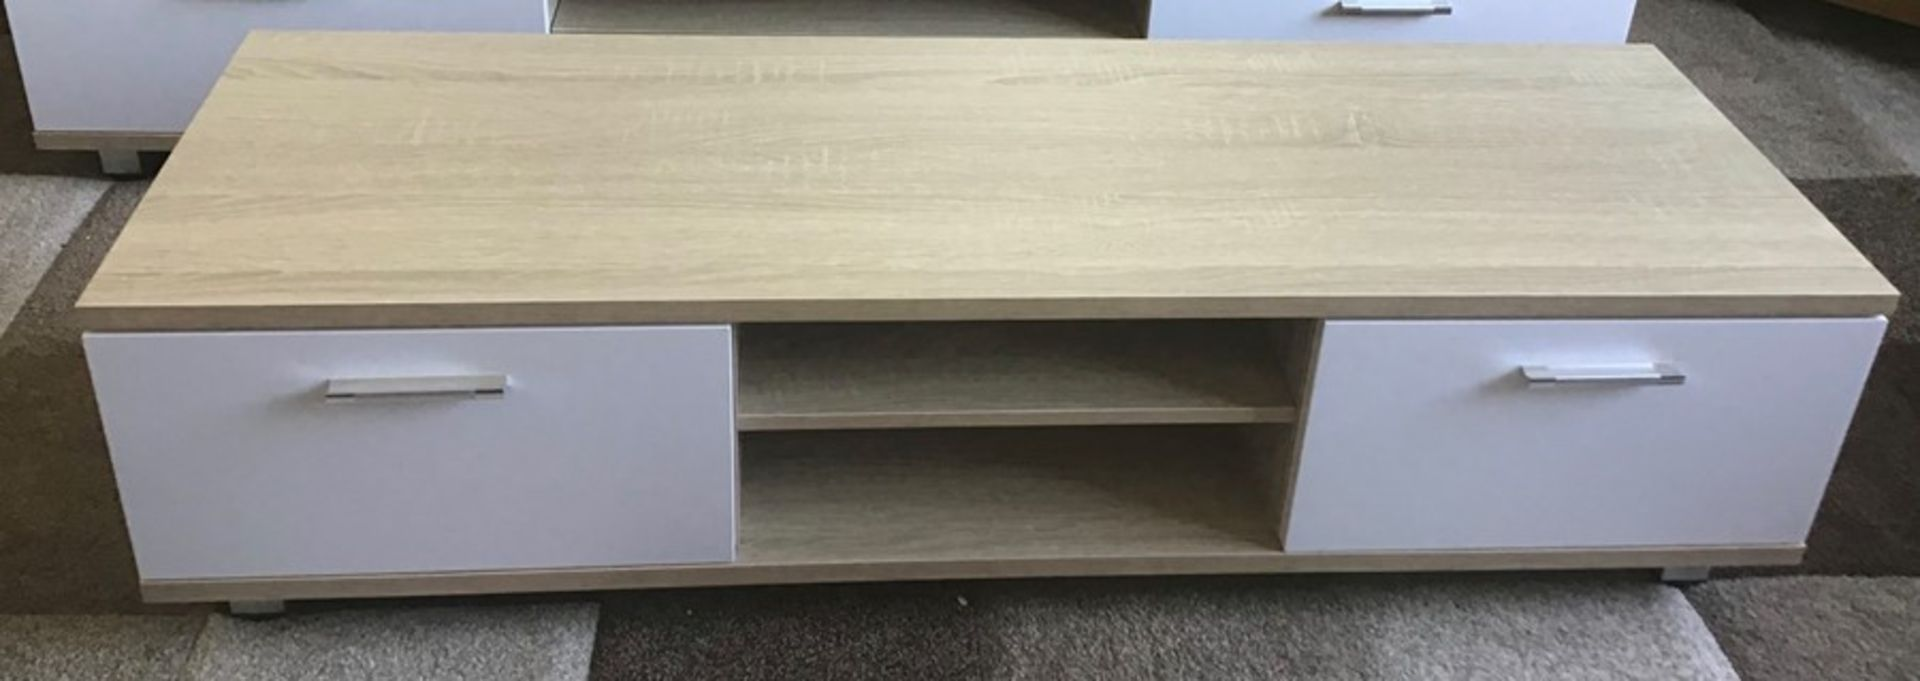 Oak and white 168cm TV stand, brand new, flat packed and boxed. RRP Circa £100.00 | 3x Boxes - Image 3 of 3